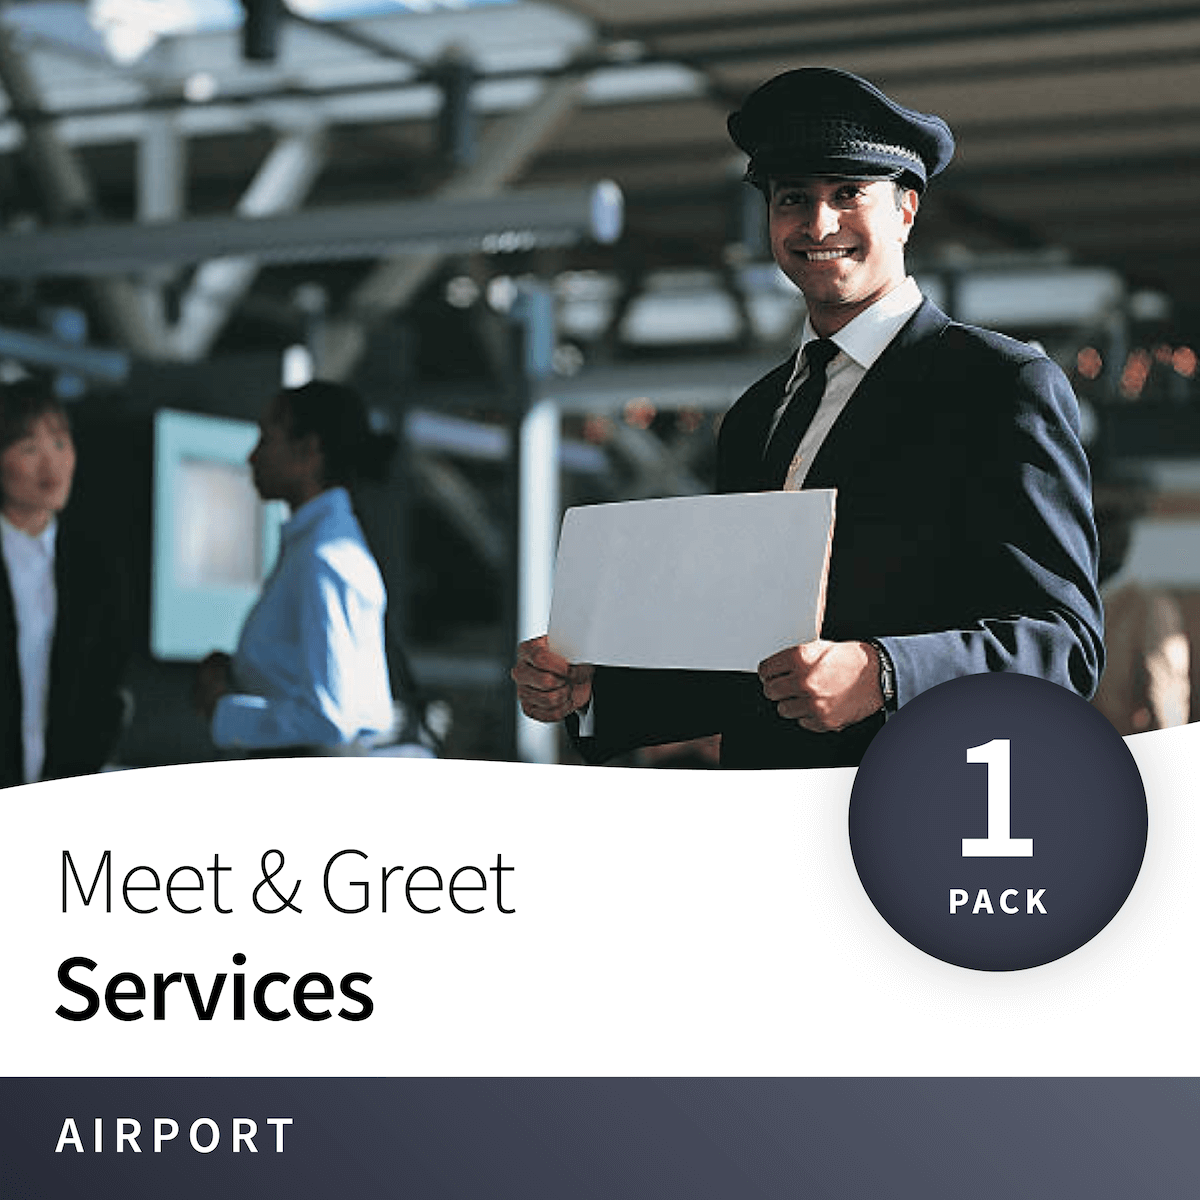 Meet & Greet Services 4